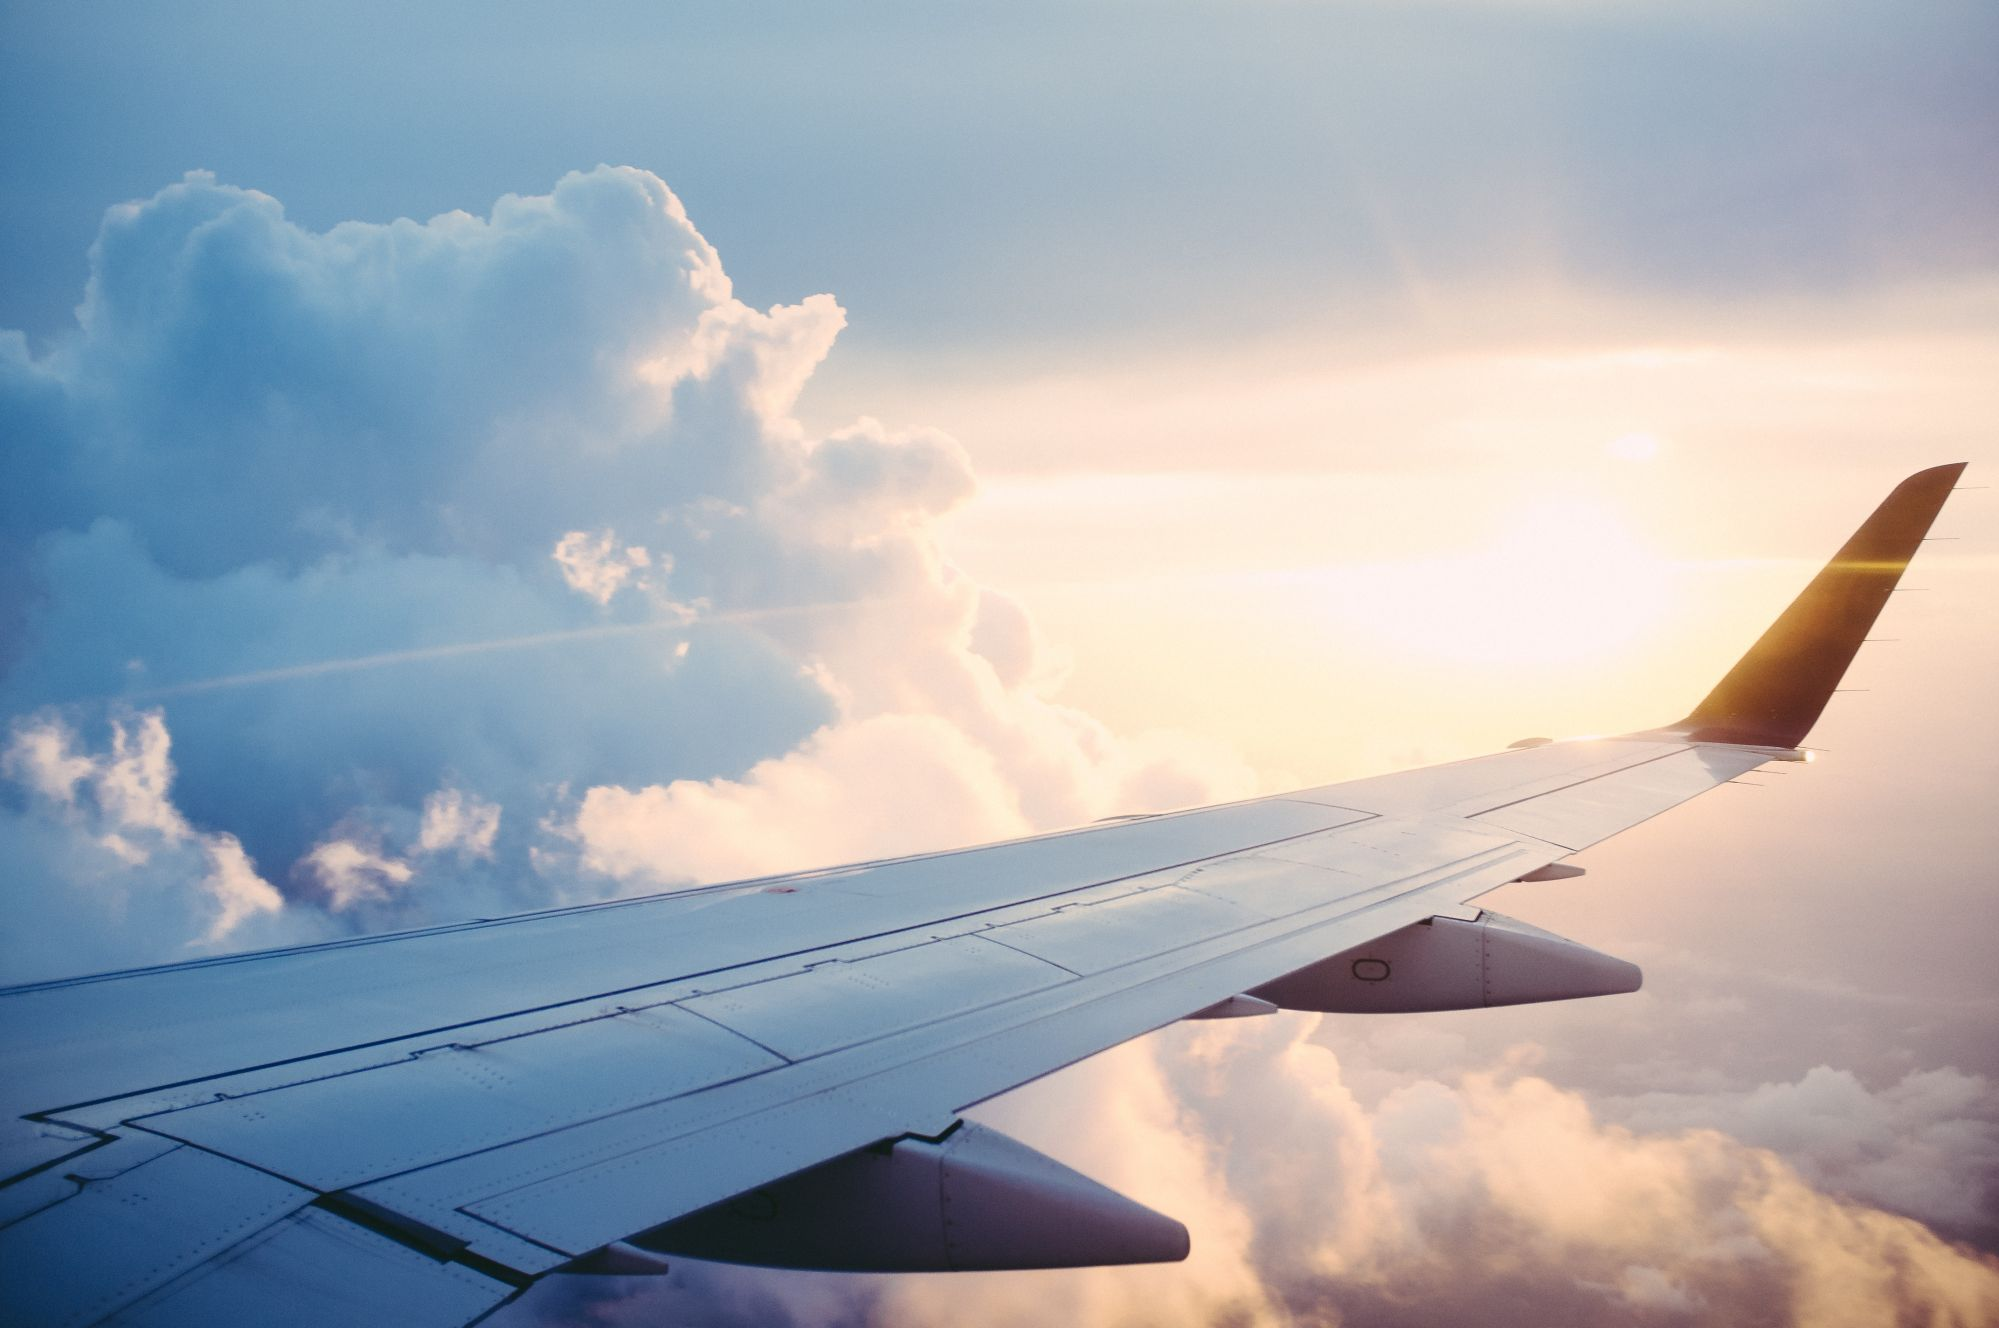 Editors' Picks: Our In-flight Beauty Must-Haves